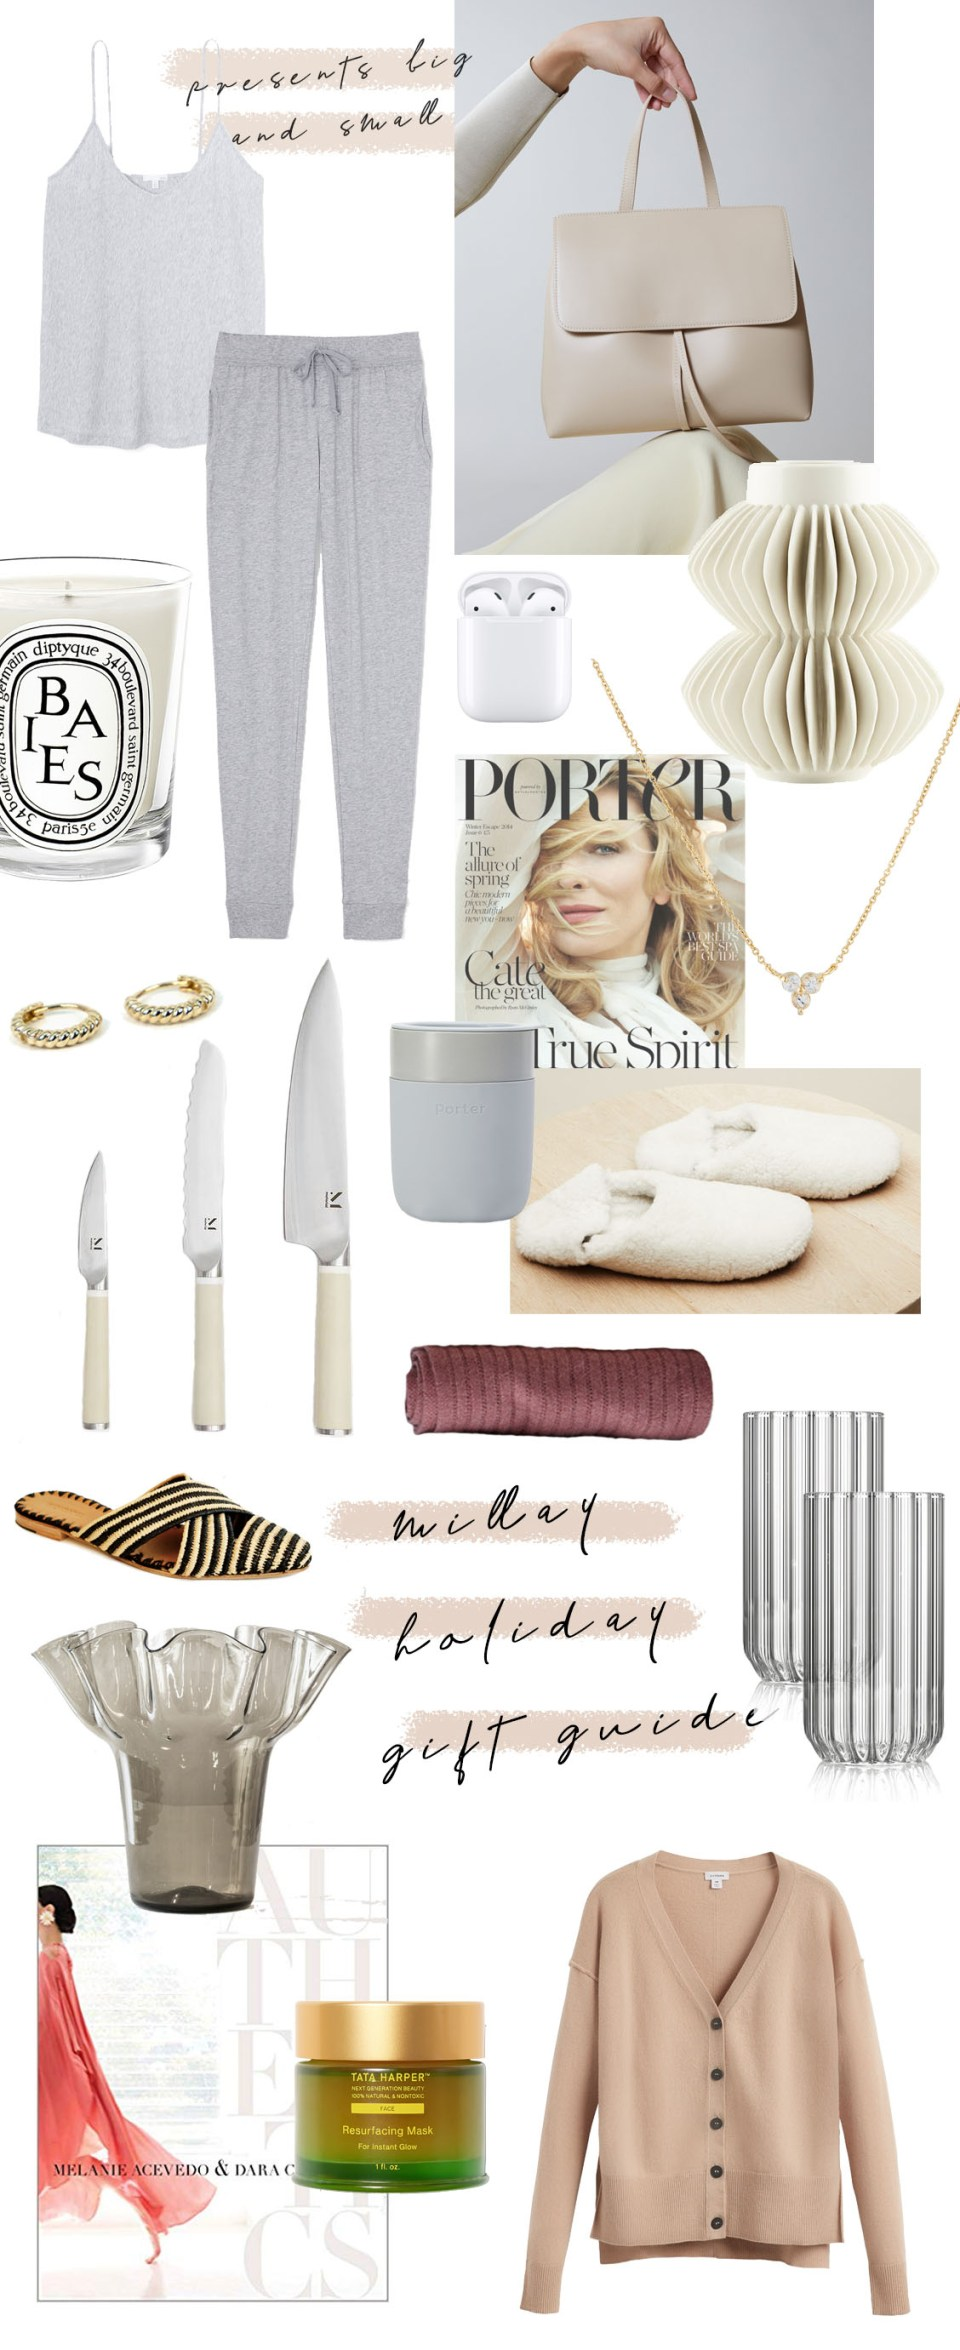 holiday gift guide by Millay Blog